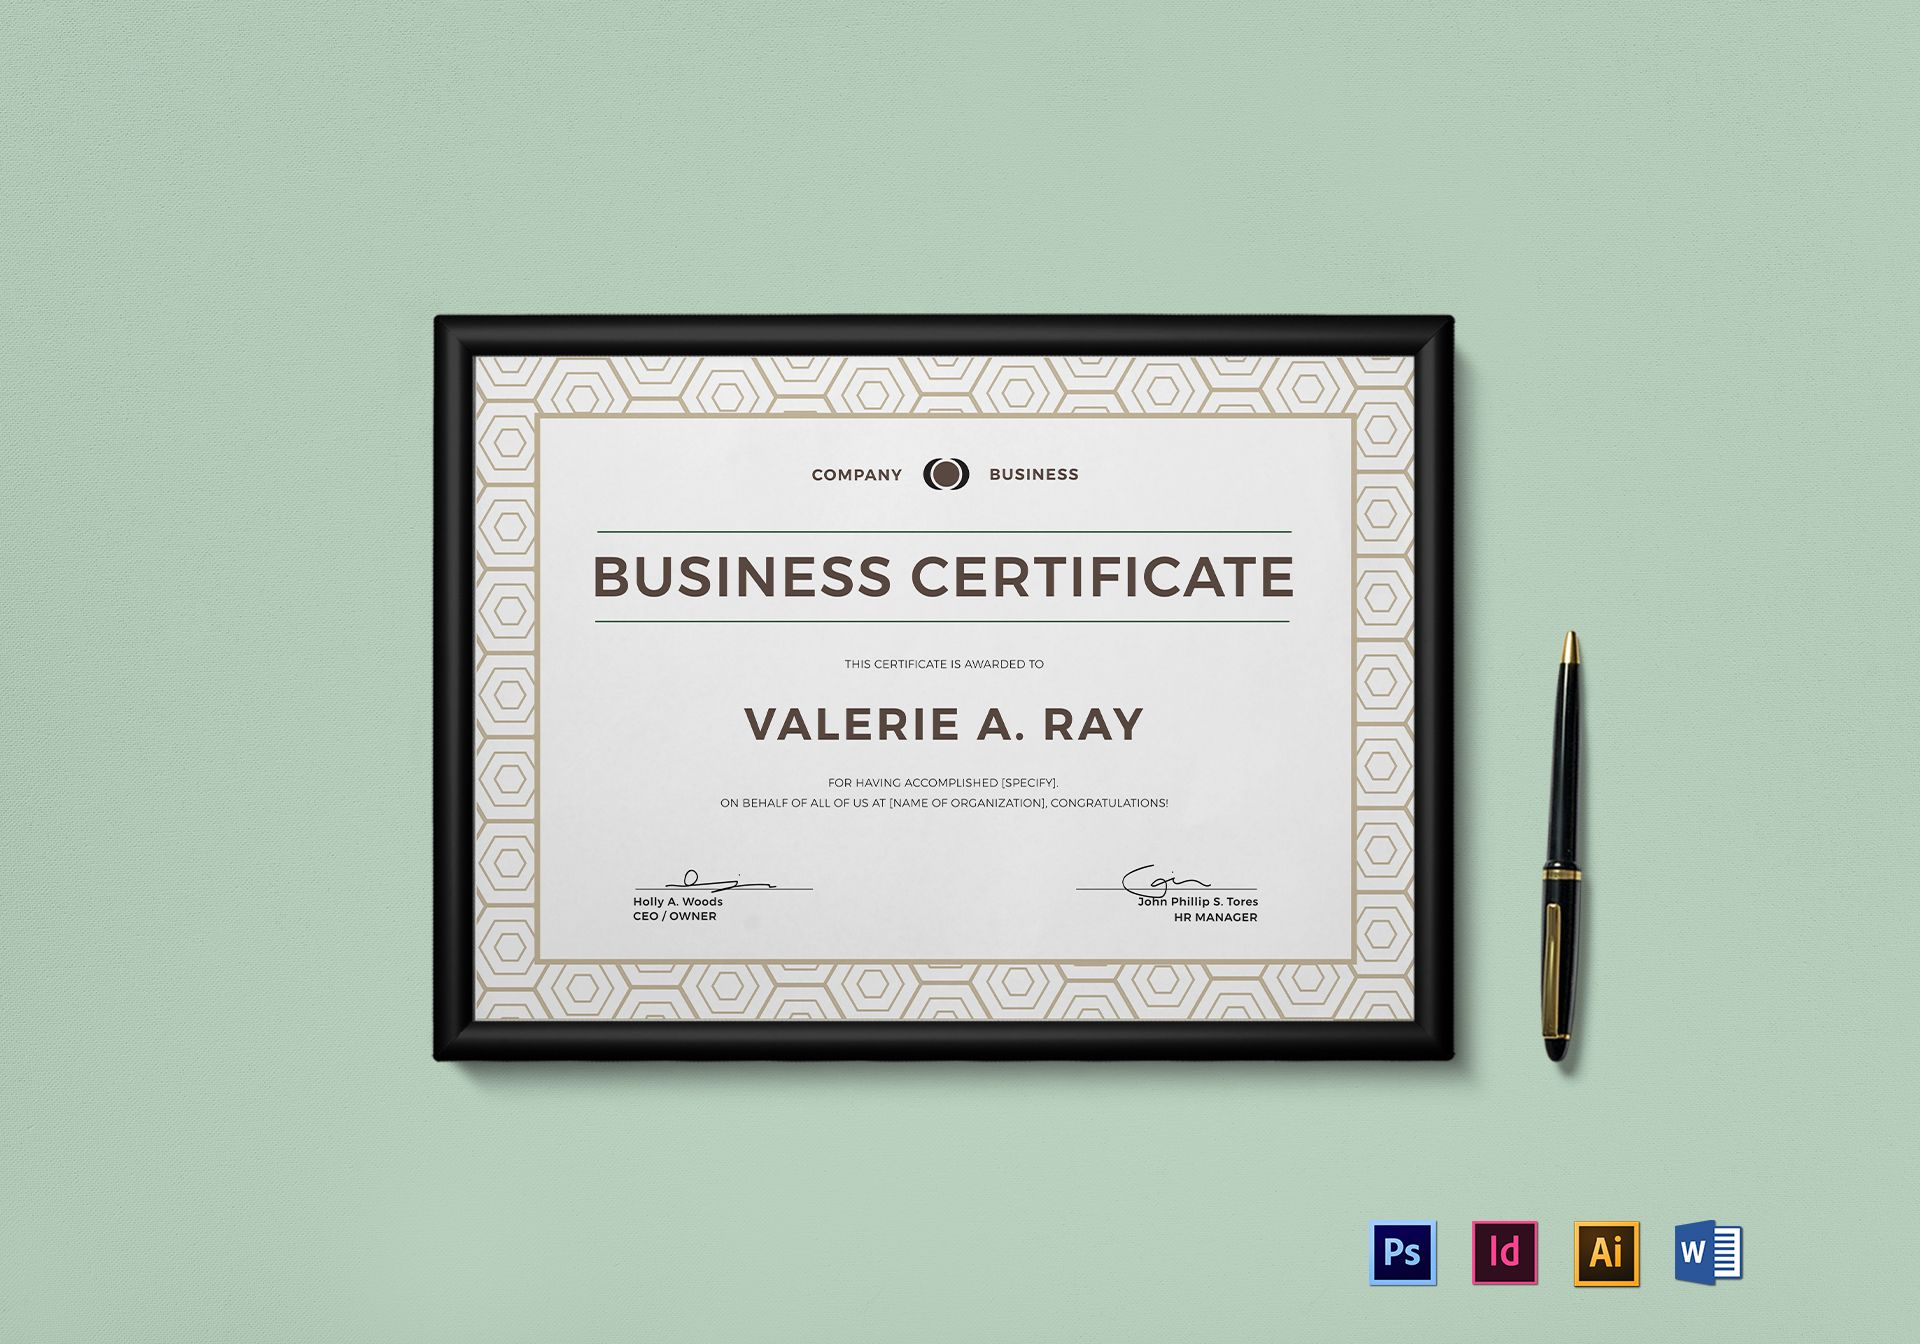 Business Certificate Design Template In Psd Word Illustrator Indesign